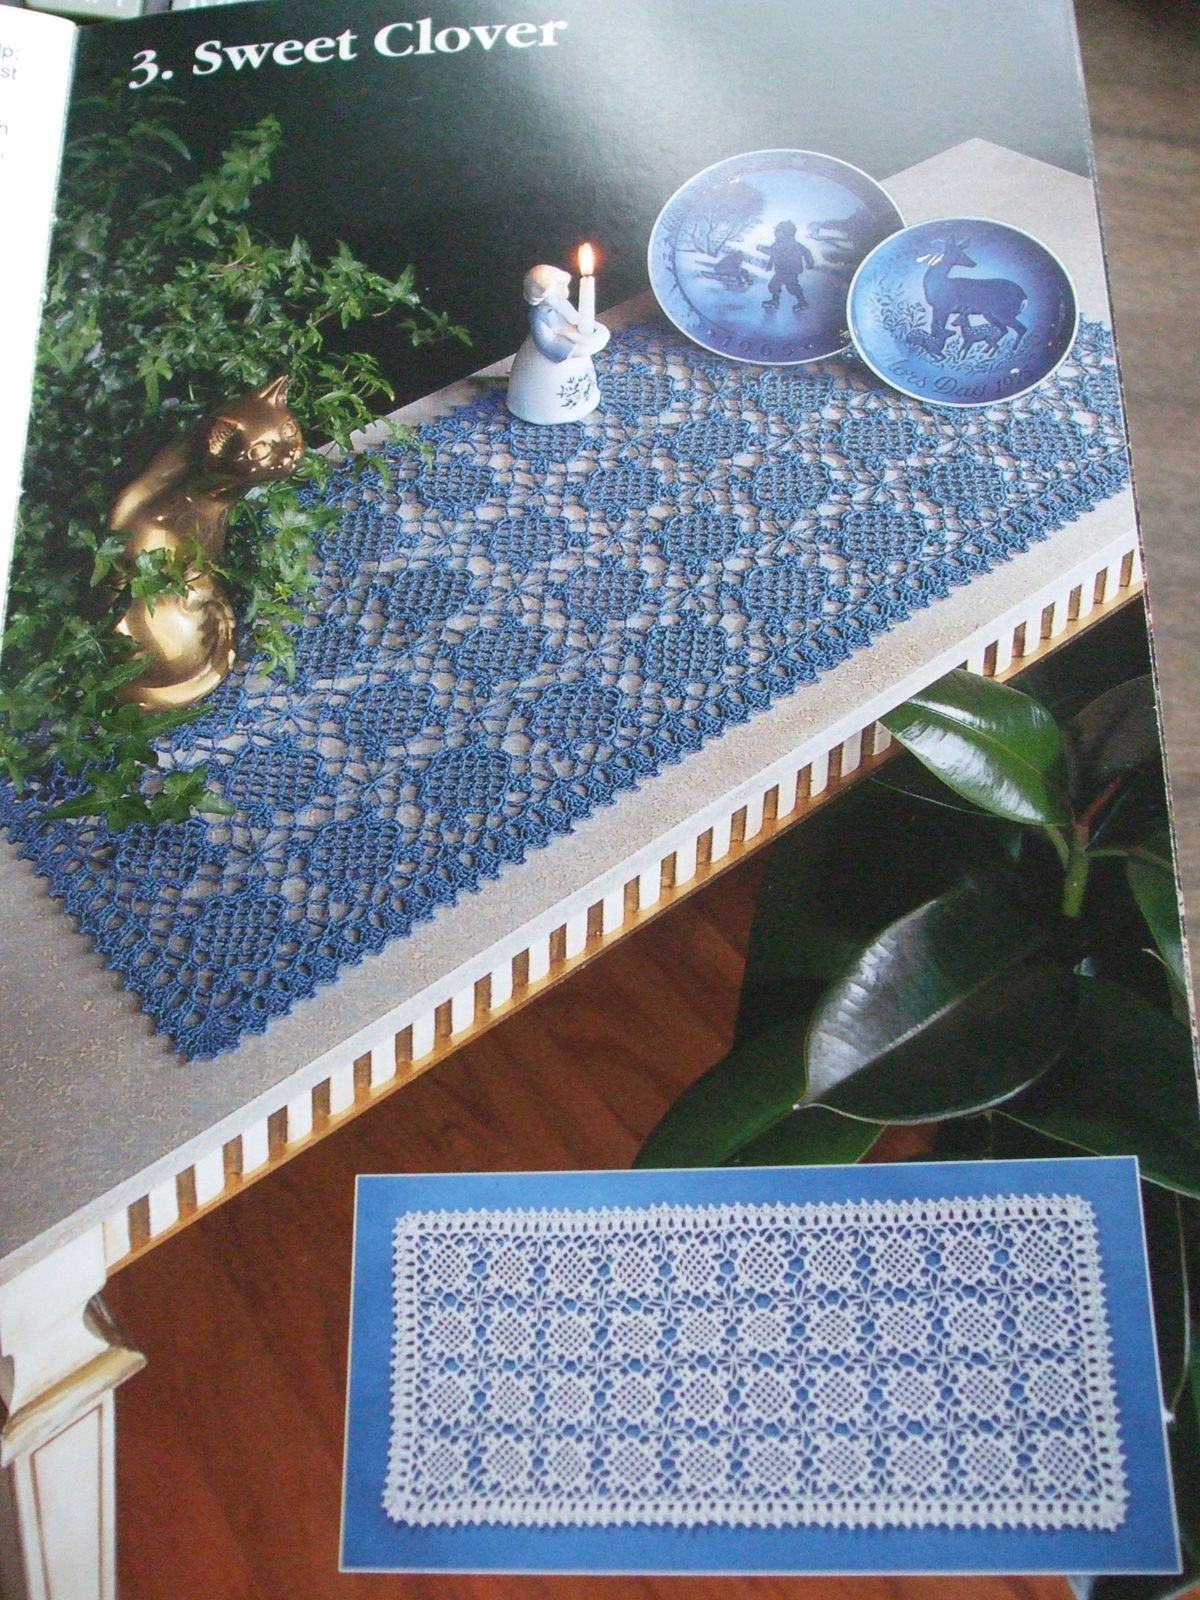 Second Silver South Maid Book 388 Crochet Patterns Tabletop